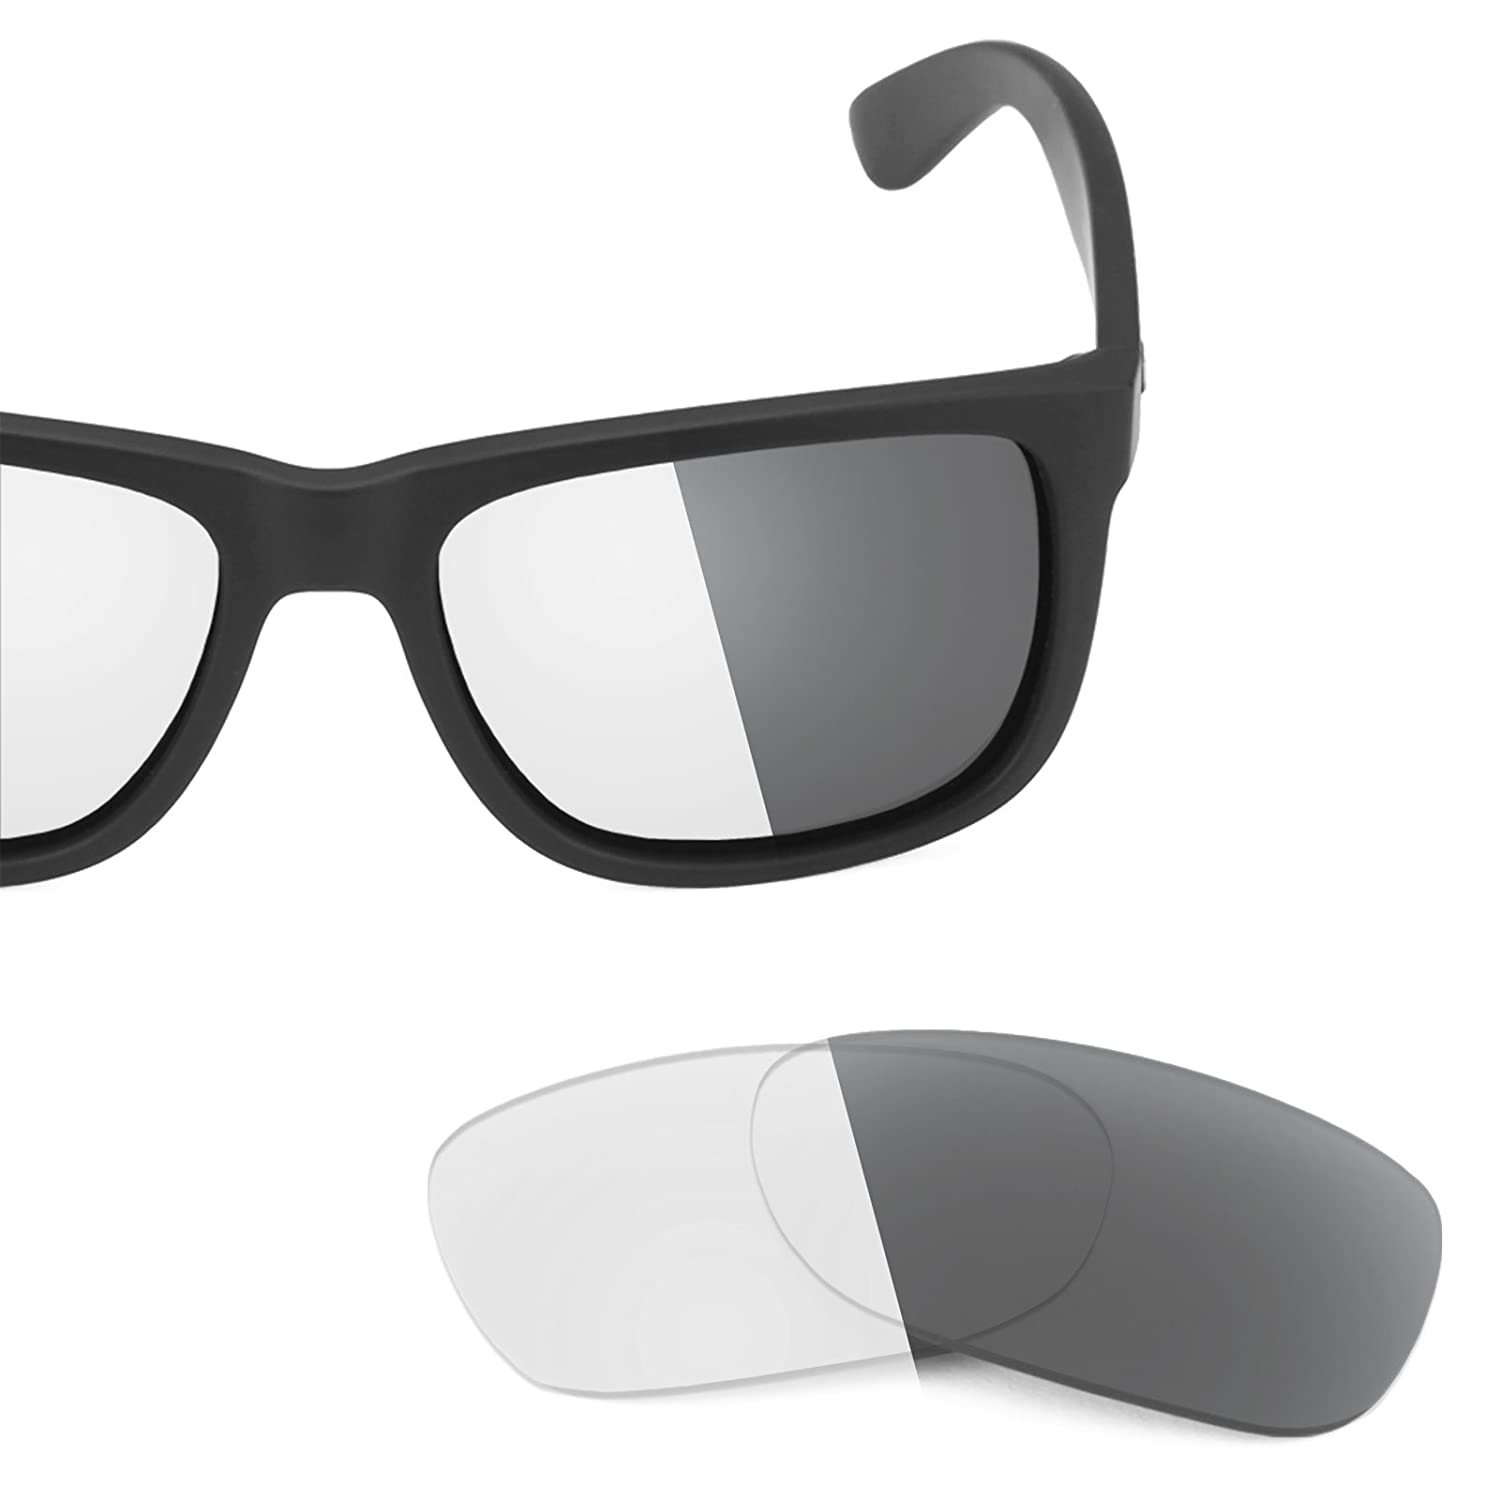 7f4eade0a Revant Replacement Lenses for Ray-Ban Justin RB4165 54mm Elite Adapt Grey  Photochromic: Amazon.co.uk: Clothing